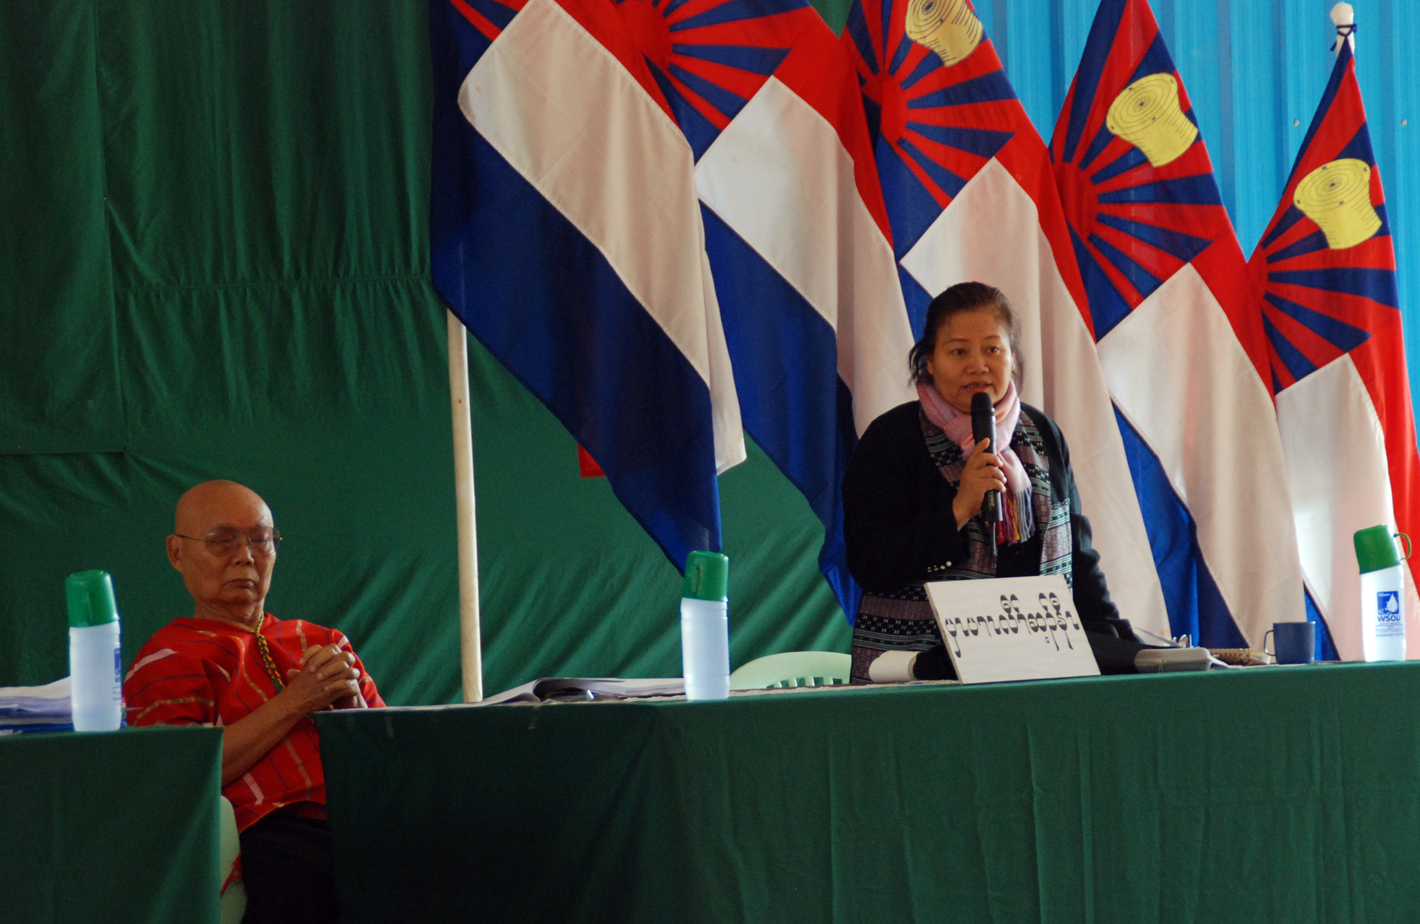 KNU leader, Chairman Gen Mutu Say Poe (left), and leader of the internal KNU opposition, previous Vice-Chairman Naw Zipporah Sein (right). Photo: David Brenner